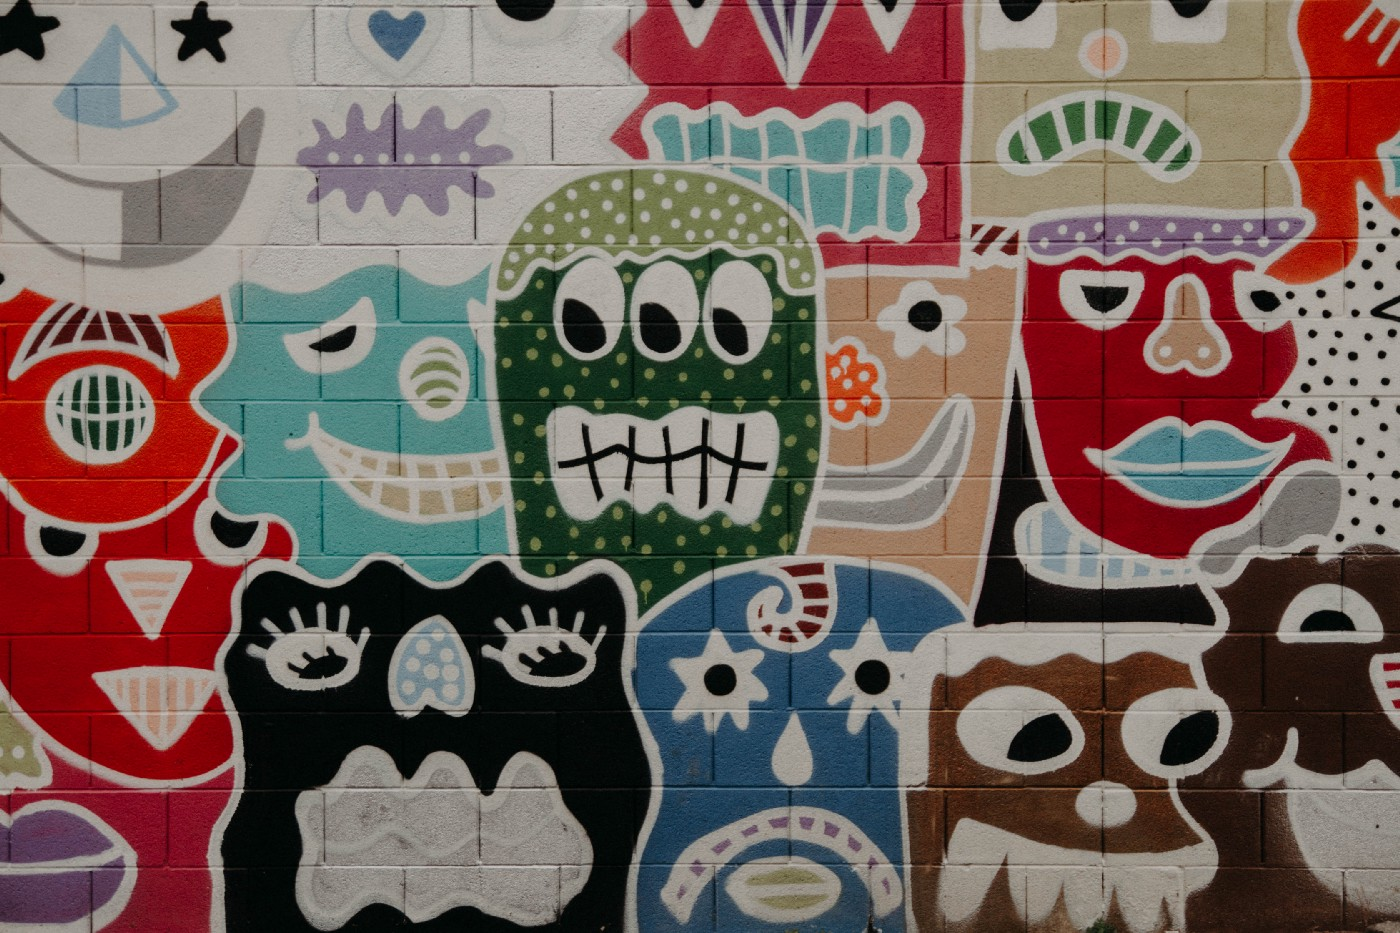 wall covered in graffiti of unusual faces